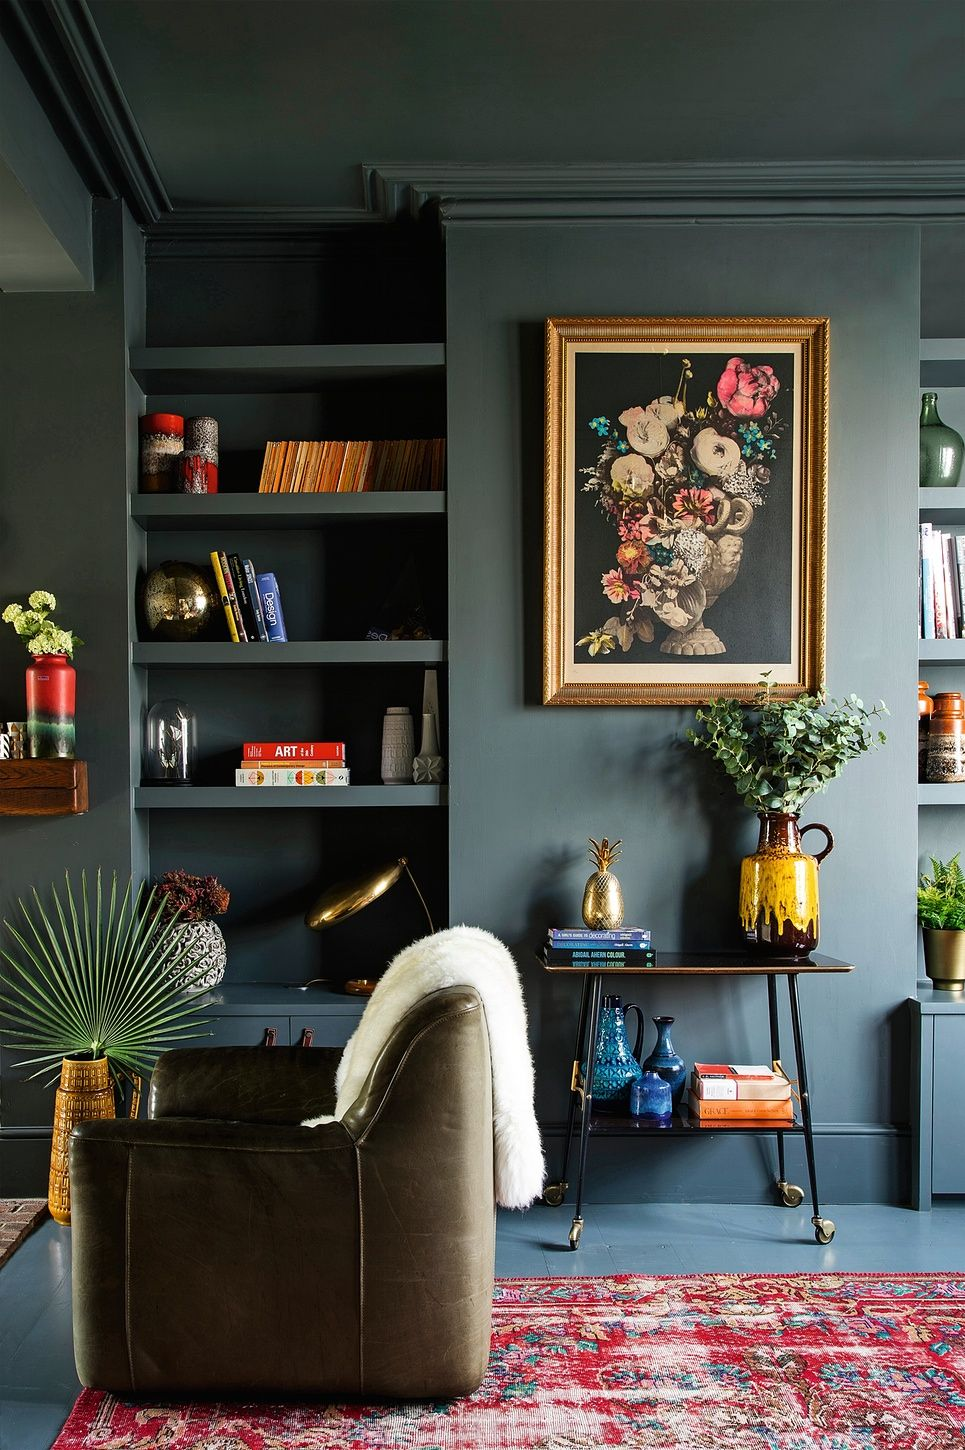 50 Easy Decor Ideas To Make Over A Room In A Day Dark Living